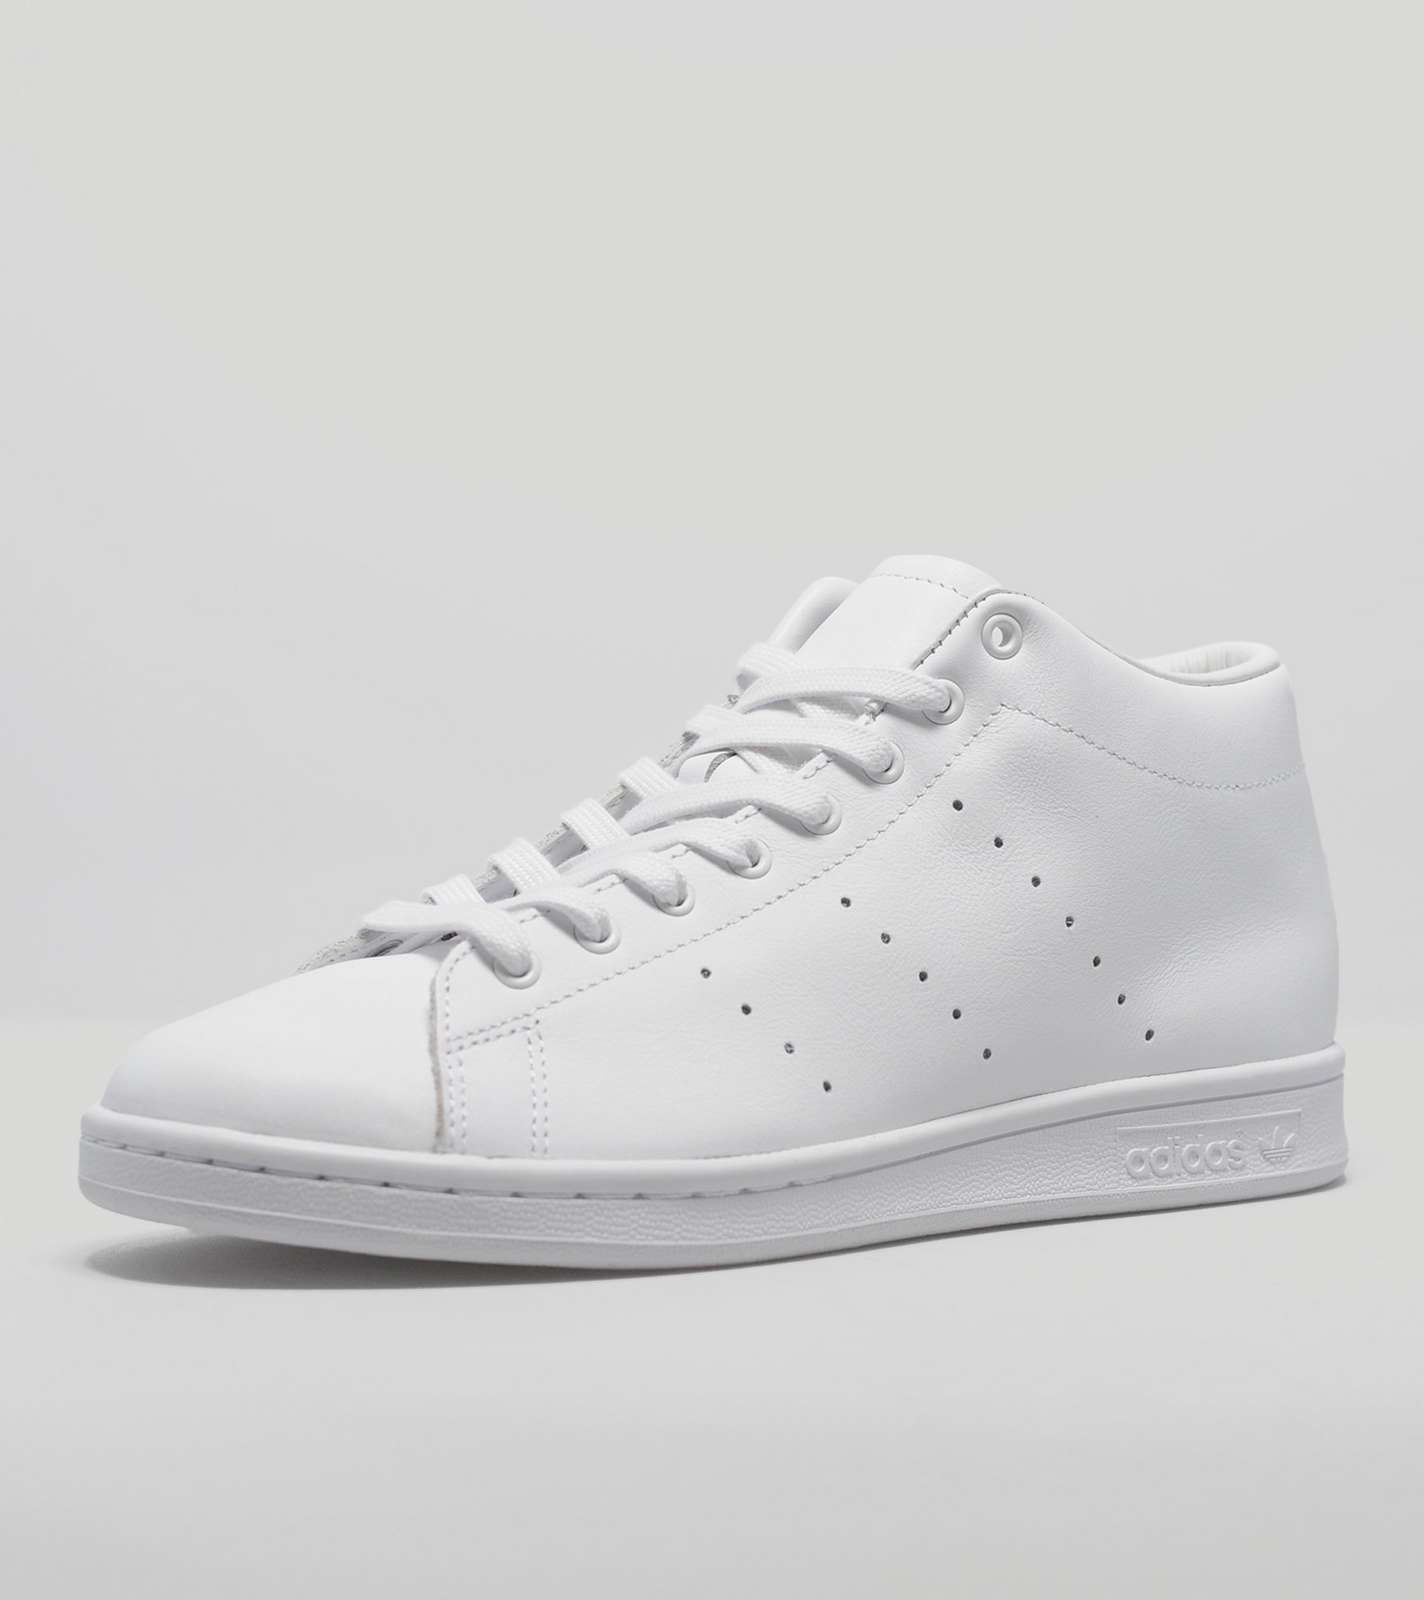 new product e8fde 4bcfd adidas Originals by HYKE AOH-001 HI Women's | Shoes | Adidas ...